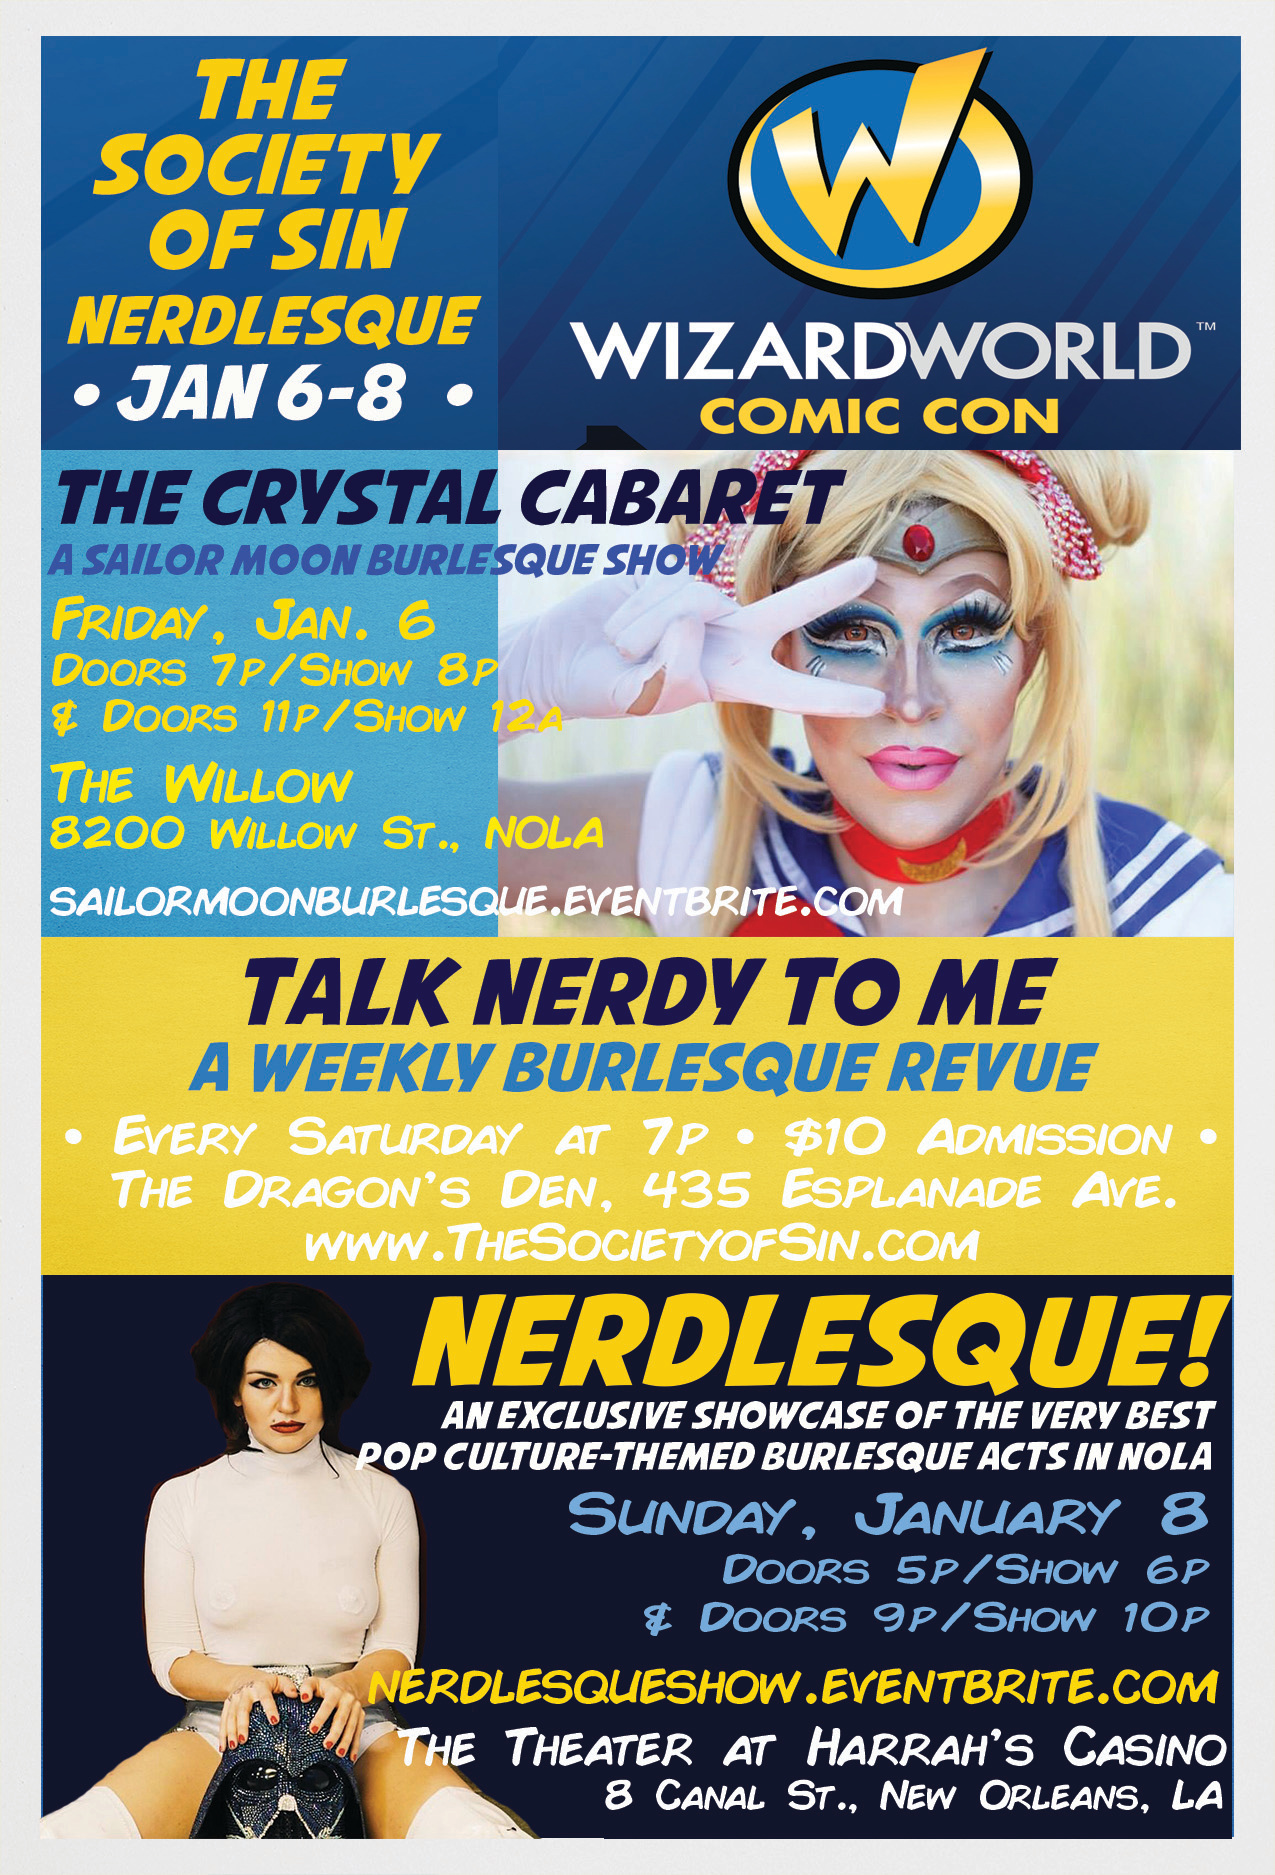 Wizard World Comic Con Weekend Shows